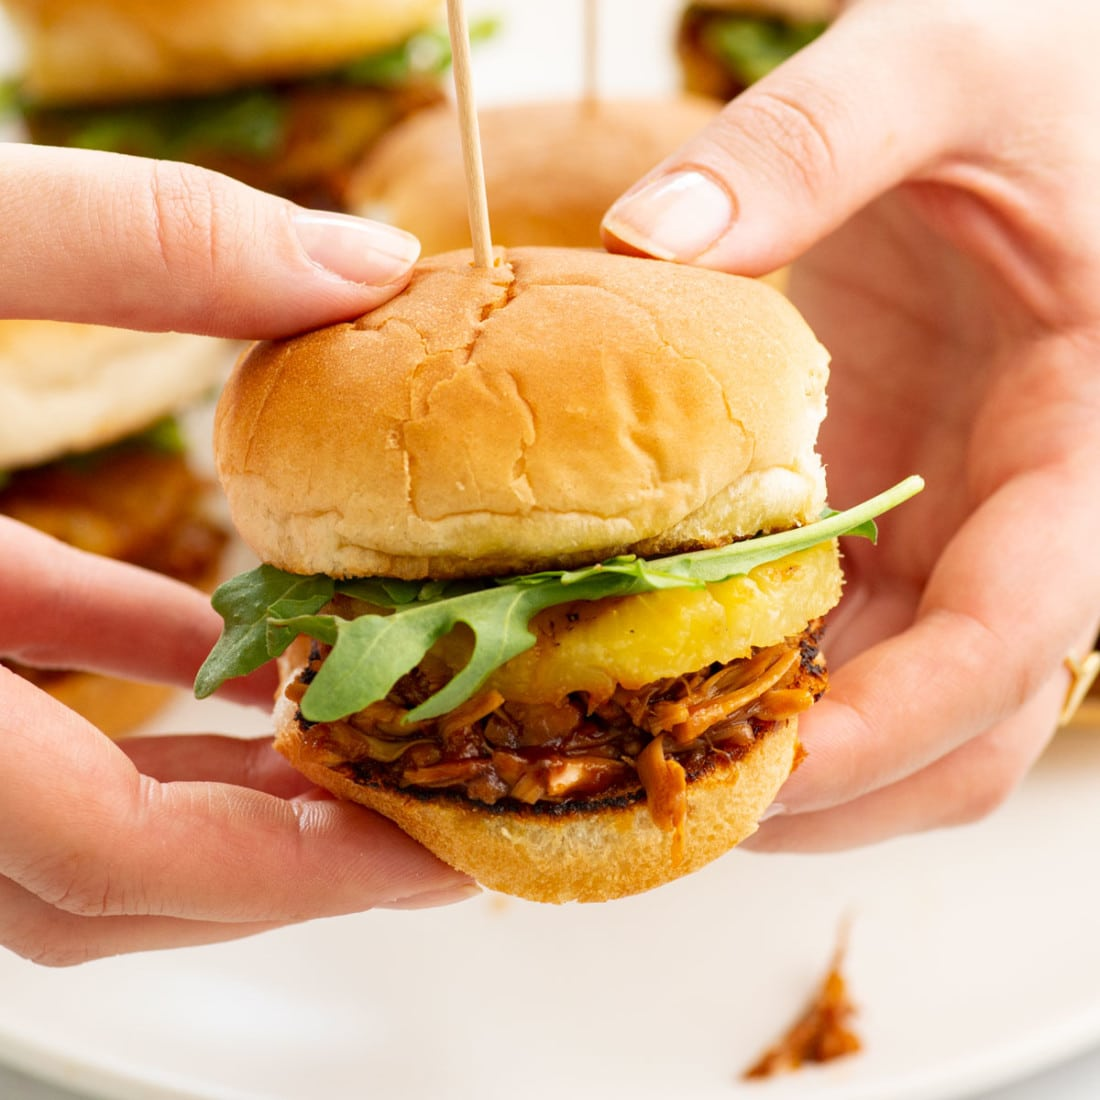 hands holding jackfruit sliders with pineapple and homemade sweet and tangy sauce